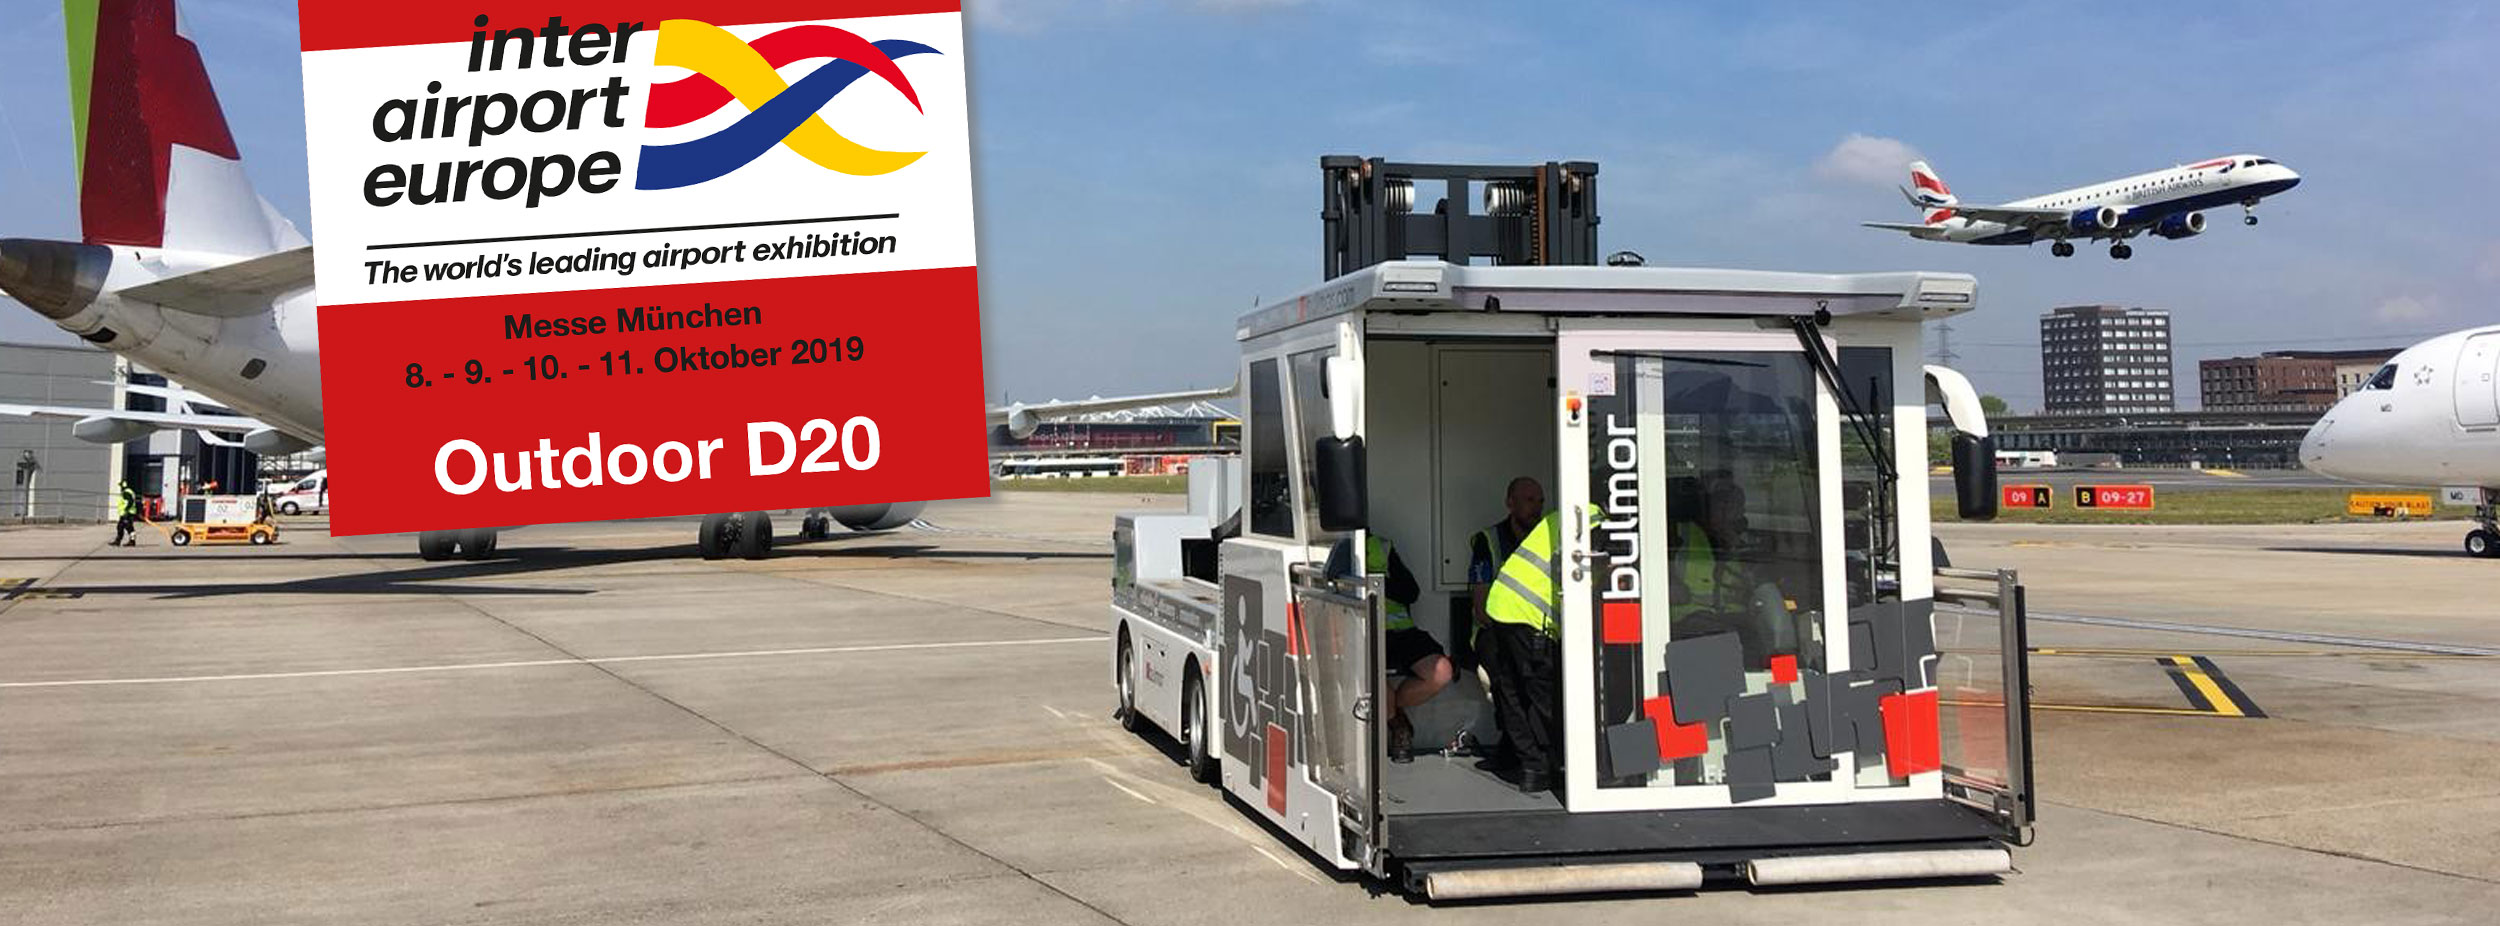 interairport show with ambulift